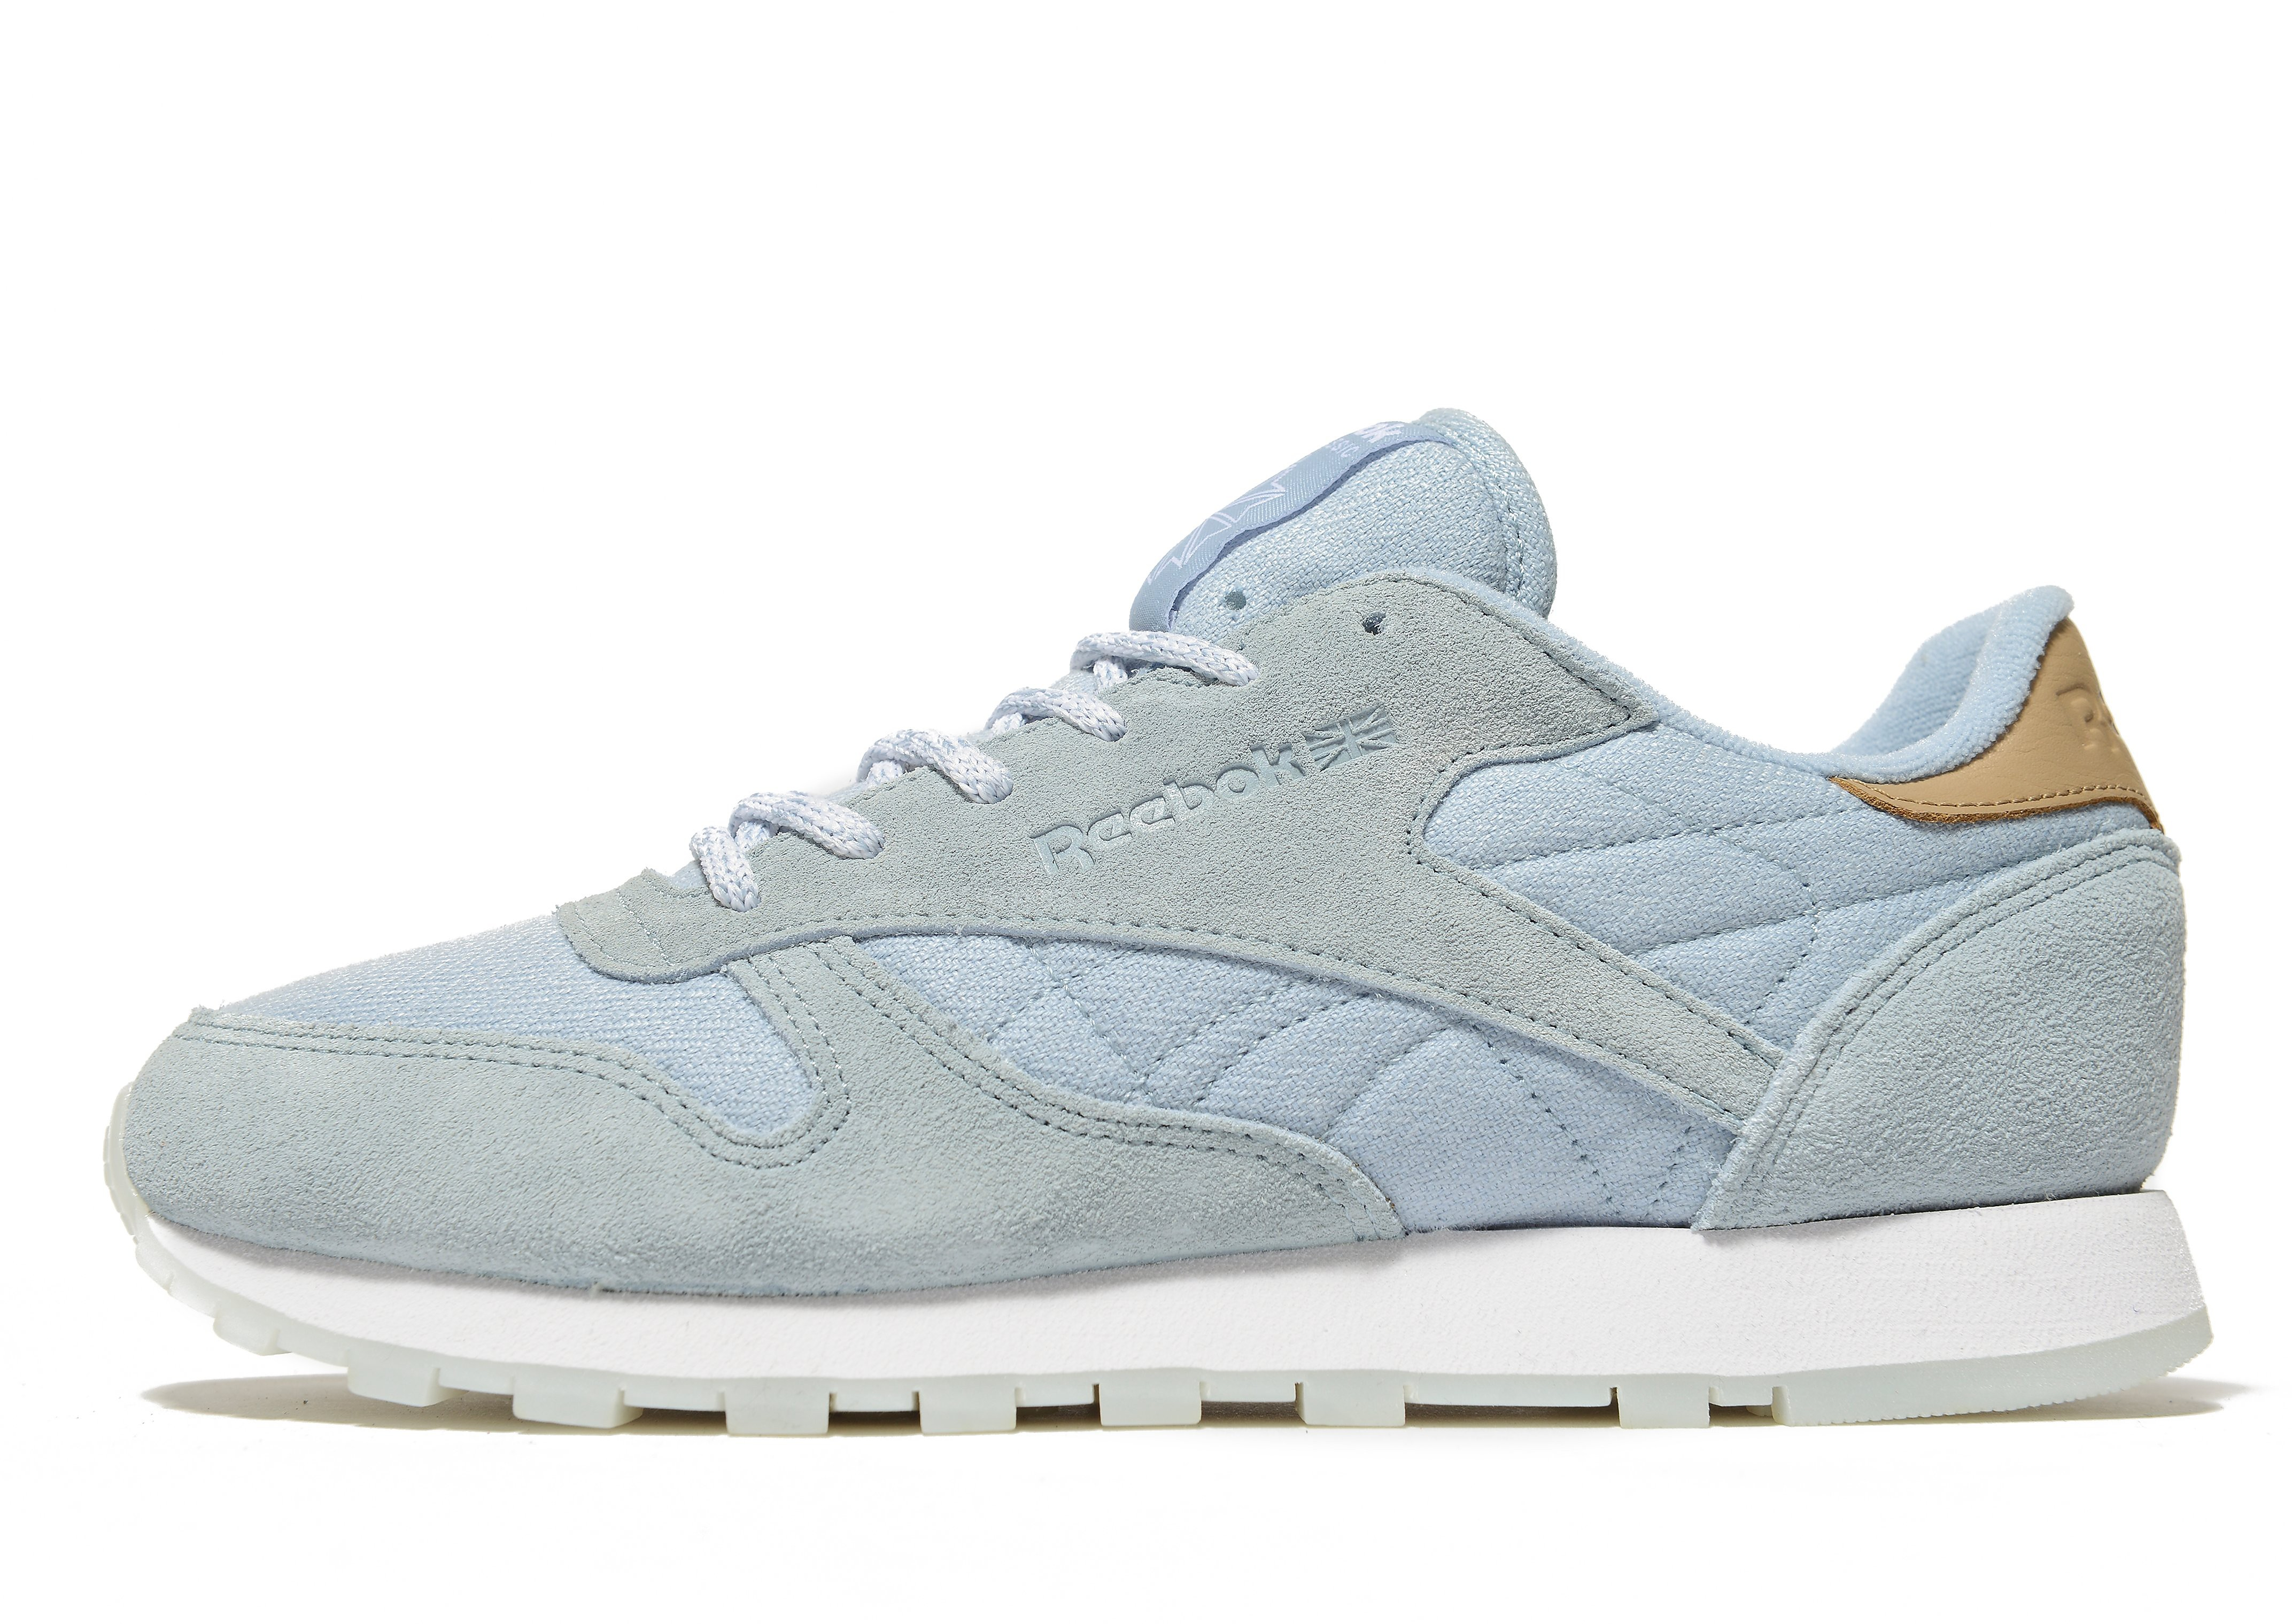 Reebok Classic Leather Sea-Worn